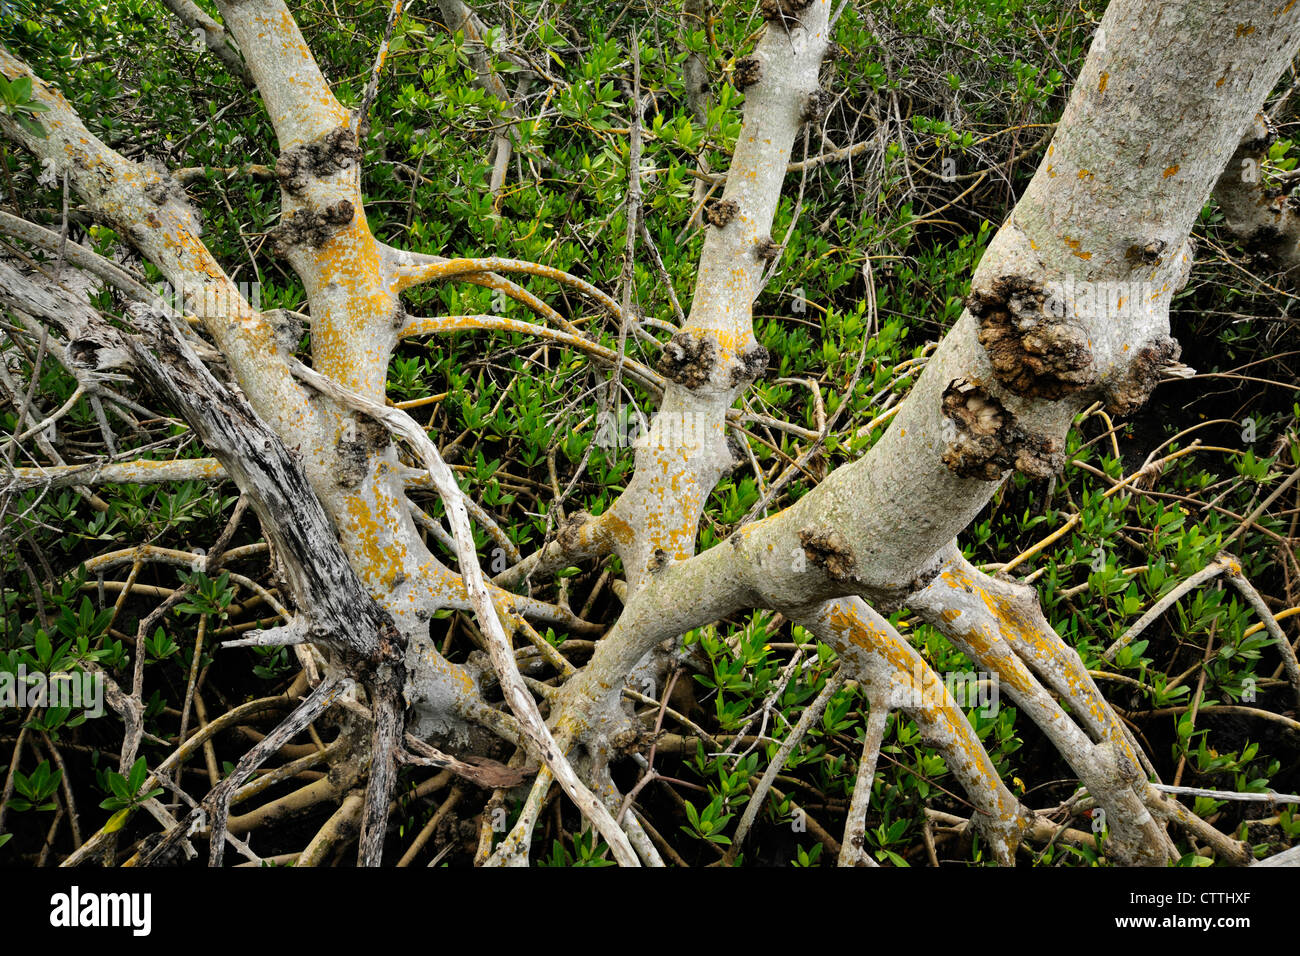 Red mangrove (Rhizophora mangle) stems and roots, Ding Darling NWR ...